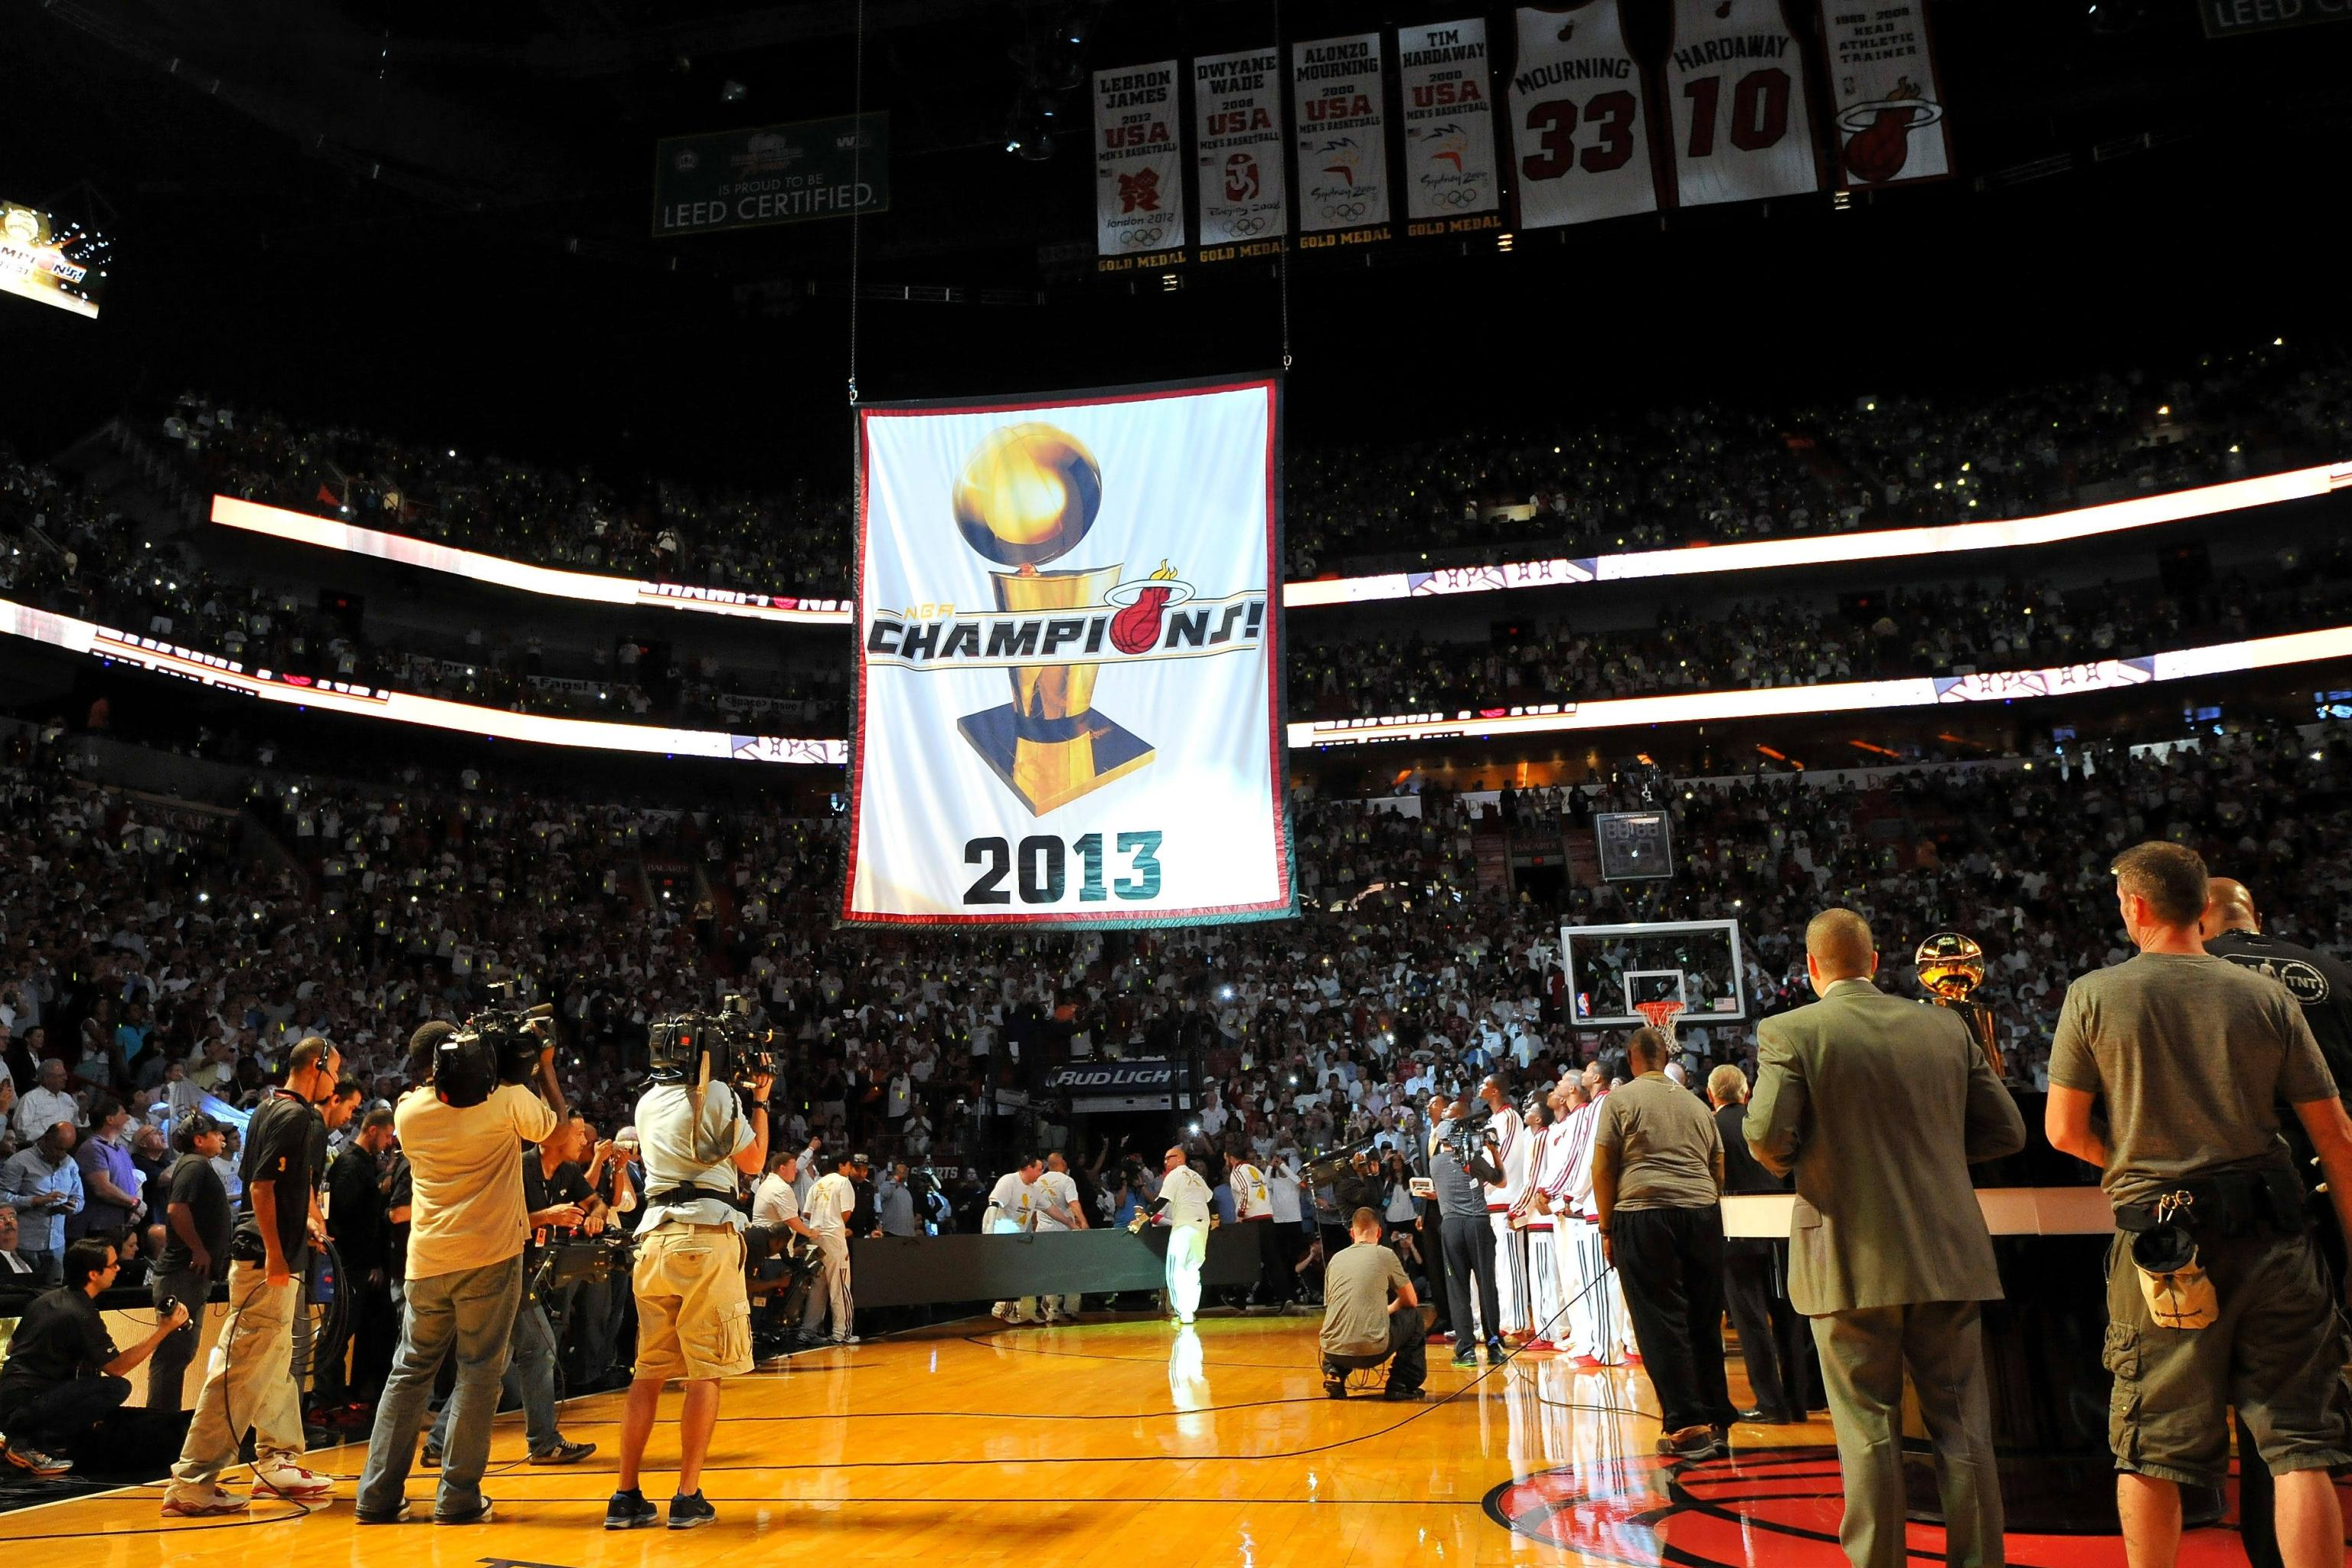 Miami Heat Championship Ring 2013 Recap Of Ceremony Before Tipoff Vs Bulls Bleacher Report Latest News Videos And Highlights